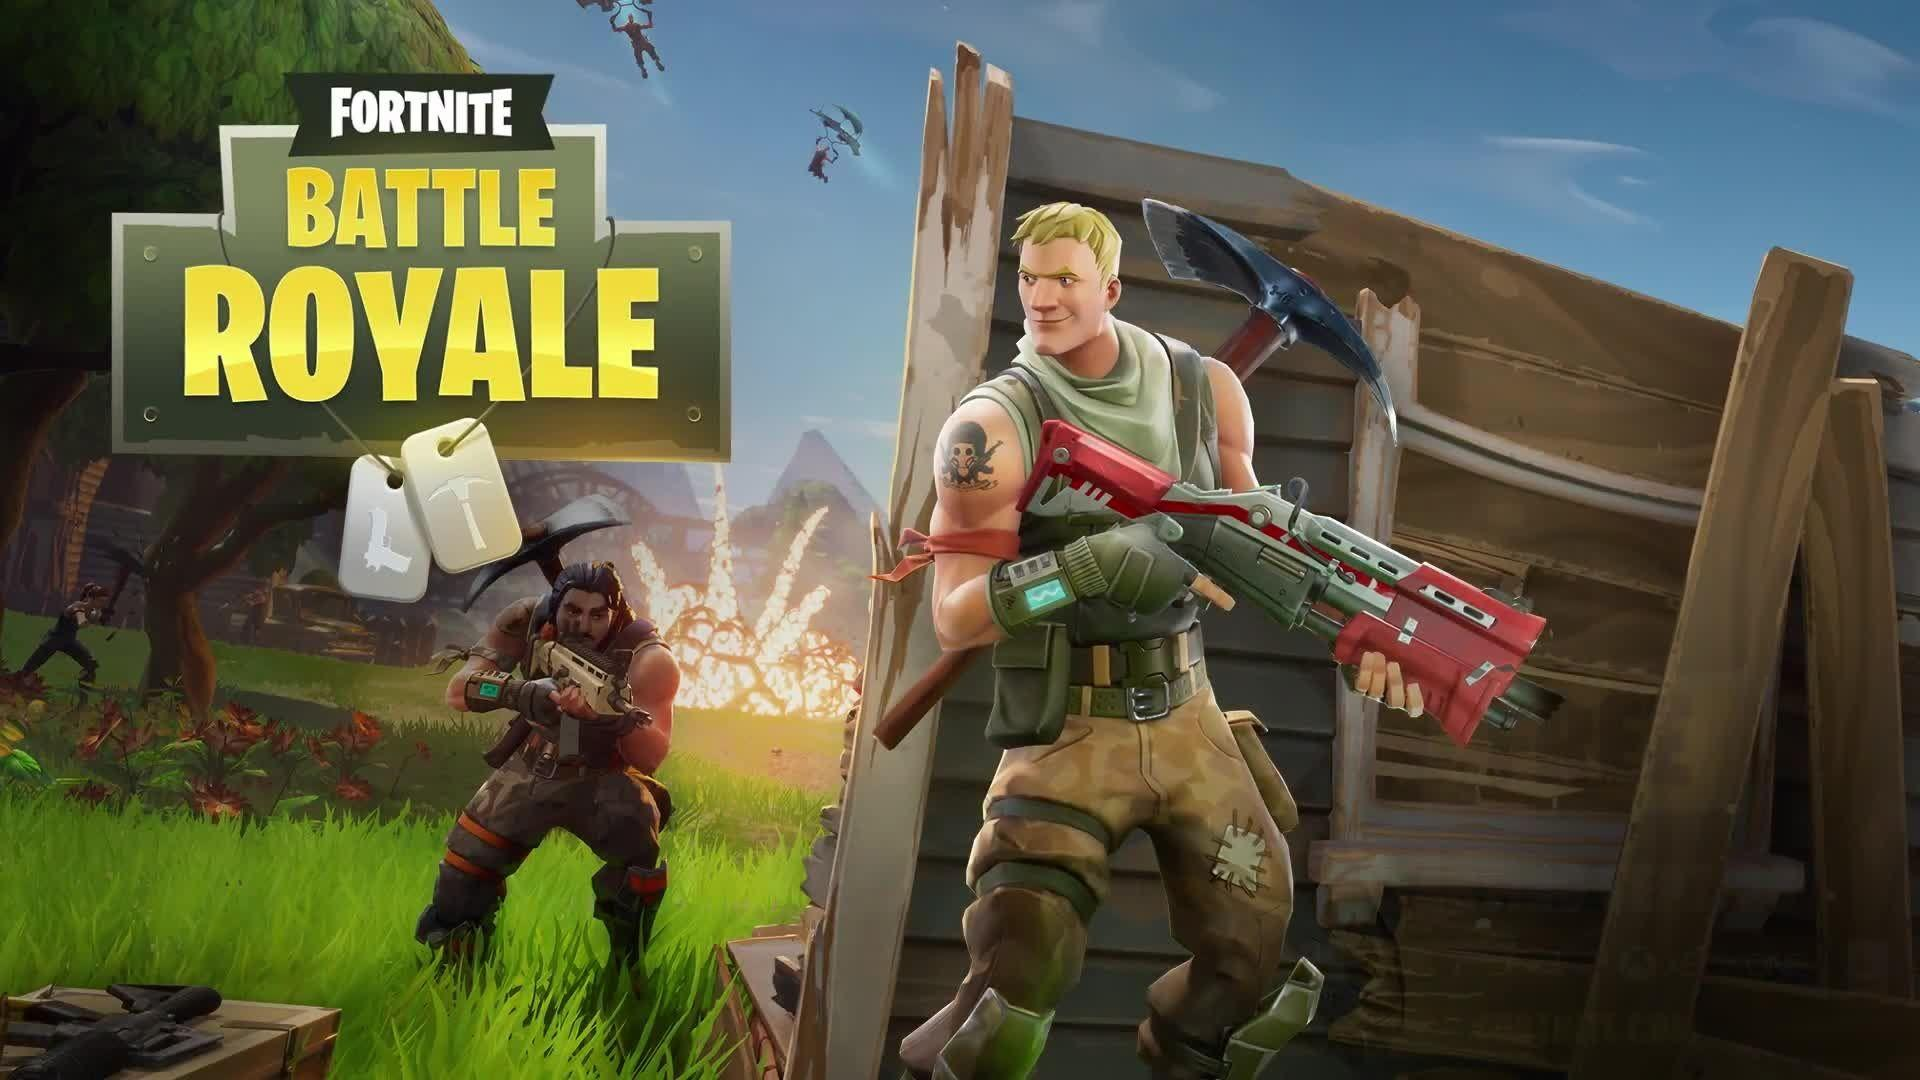 Fortnite Battle Royale Wallpaper 62257 1920x1080 px ~ HDWallSource.com